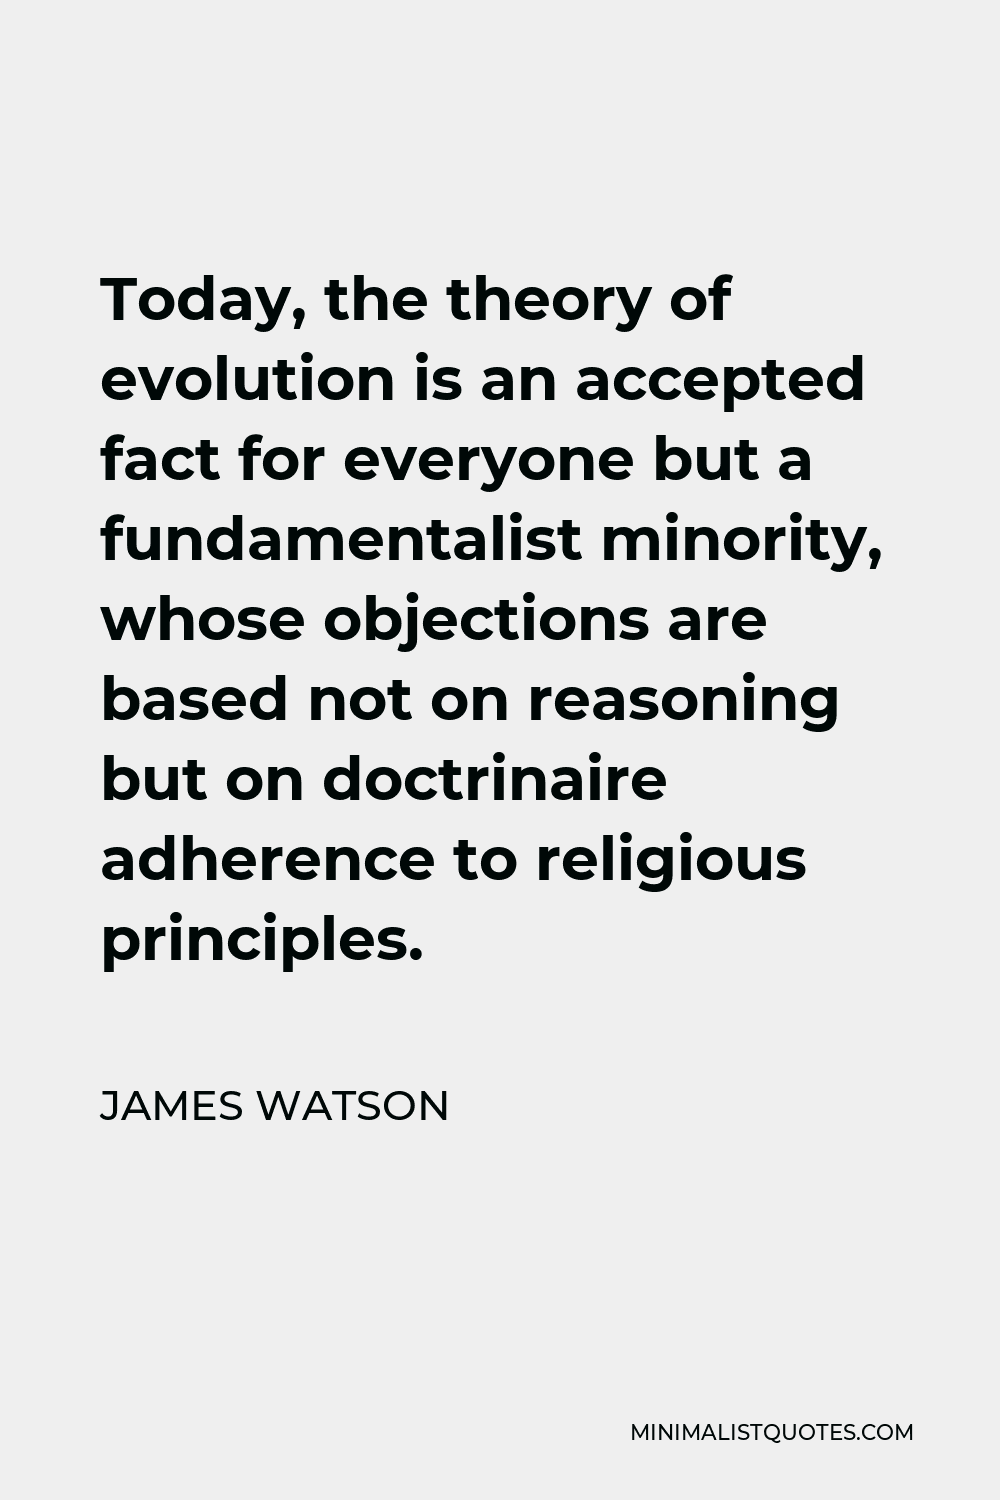 James Watson Quote - Today, the theory of evolution is an accepted fact for everyone but a fundamentalist minority, whose objections are based not on reasoning but on doctrinaire adherence to religious principles.